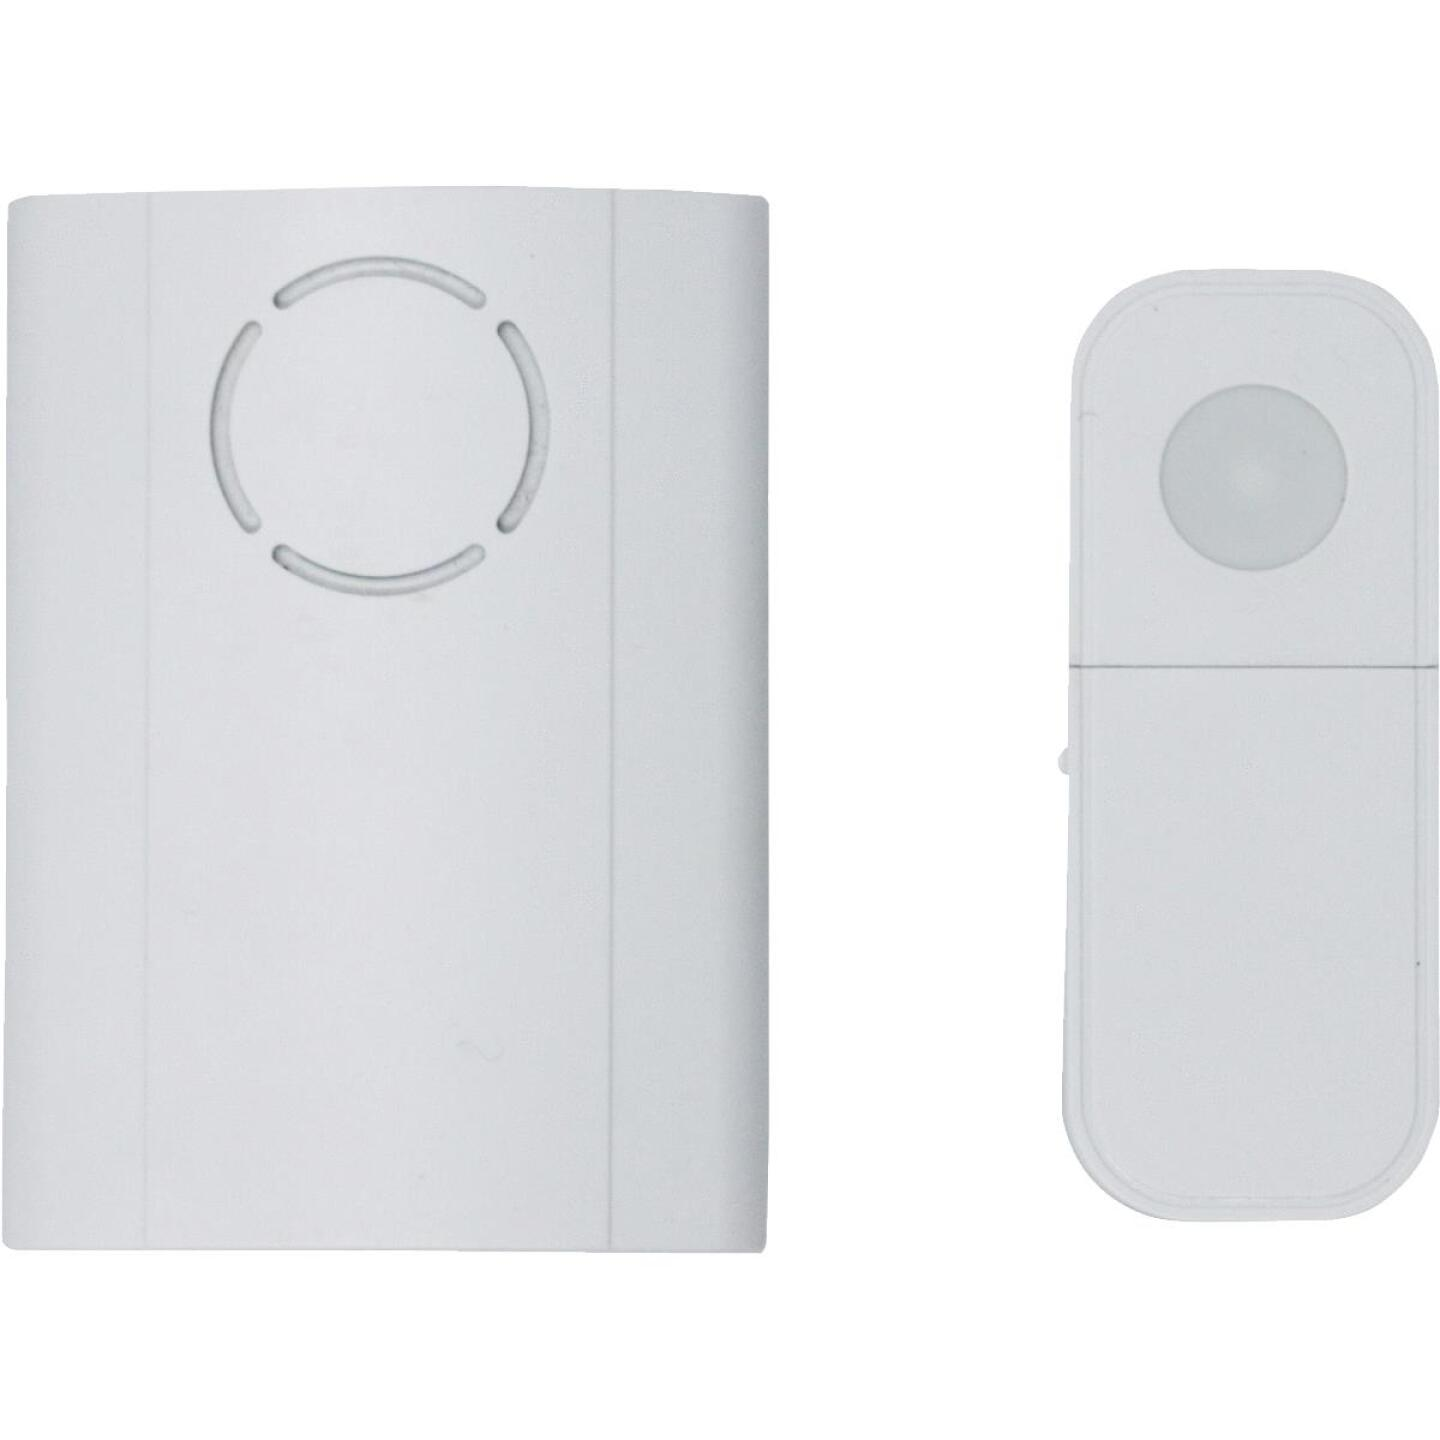 IQ America Battery Operated Wireless White Door Chime Image 2